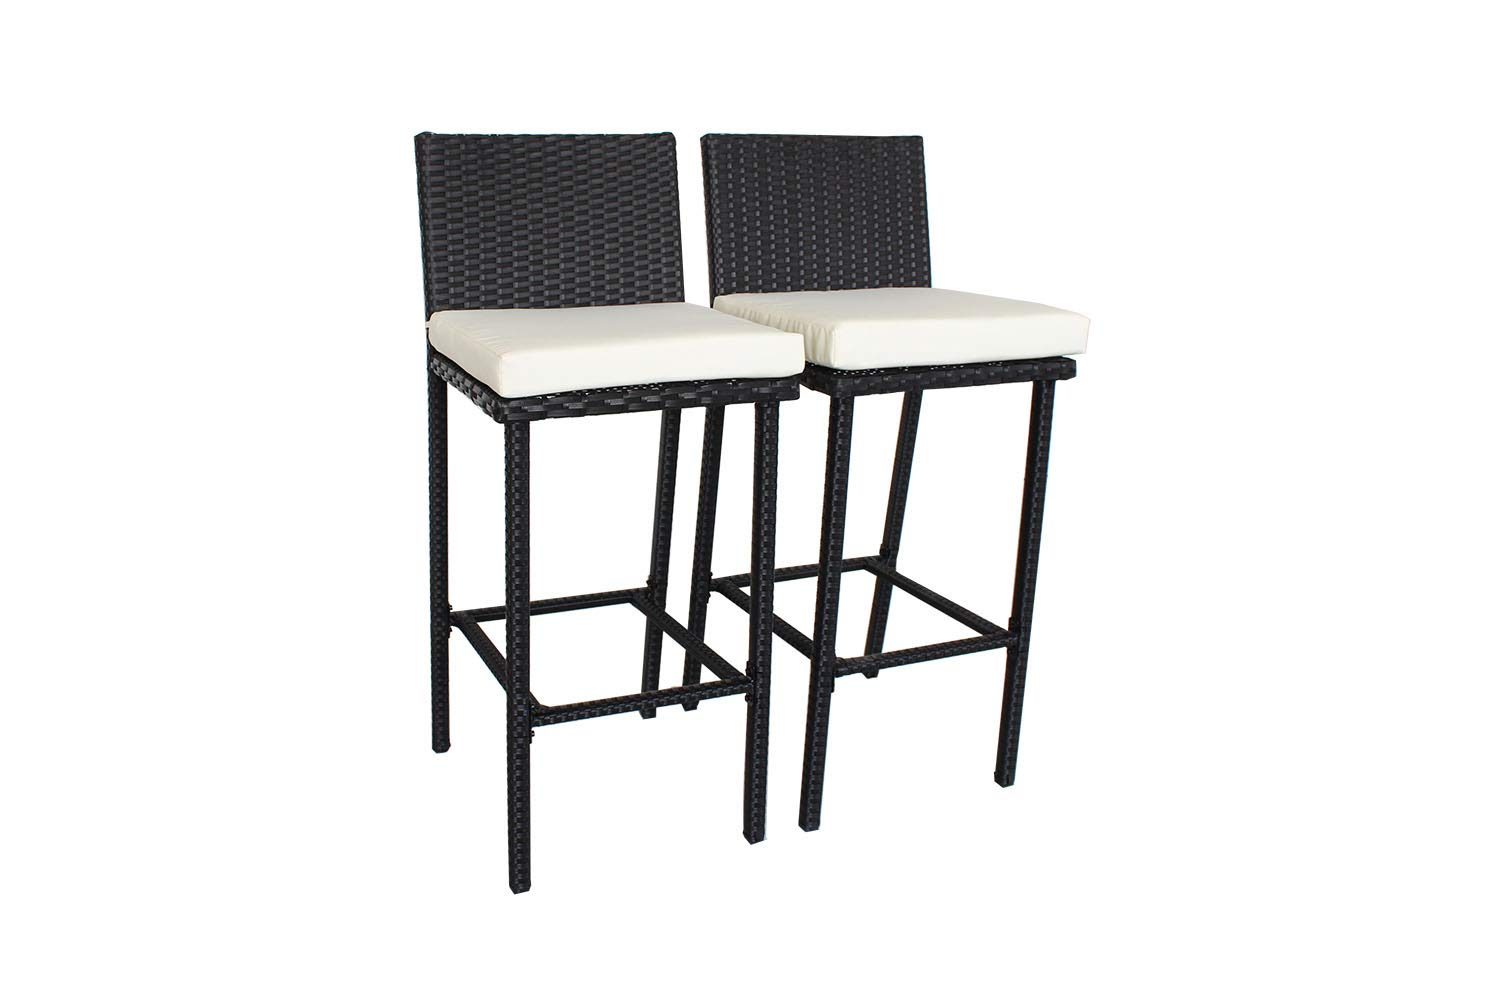 Outdoor Patio Furniture Rattan Black Wicker Cushioned Barstool(Beige Cushions,Set of 2)